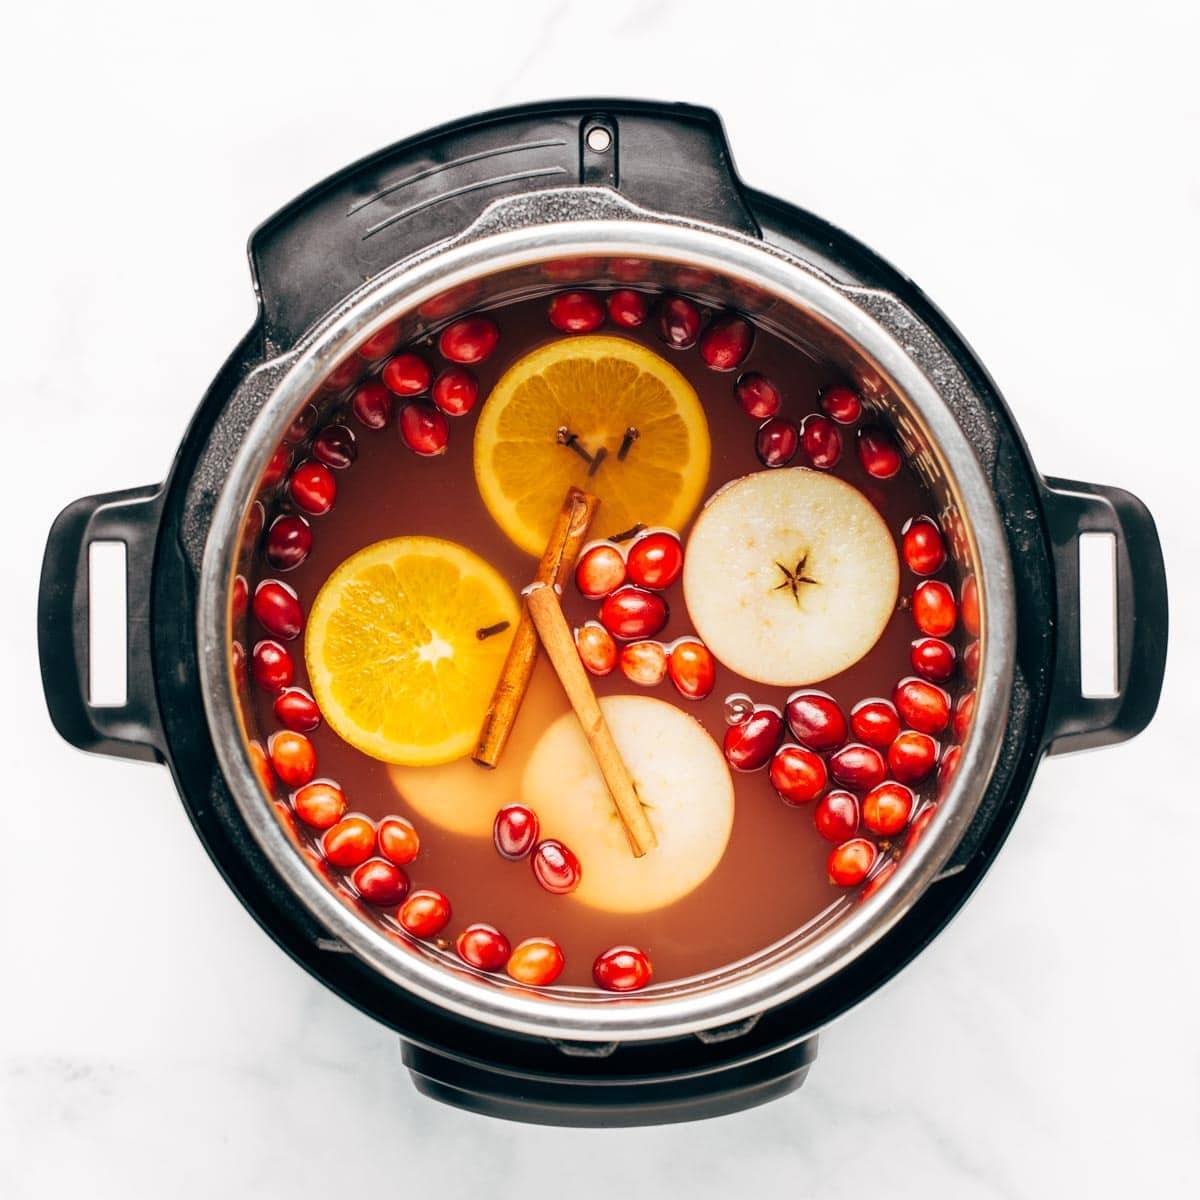 Hot cider in the Instant Pot.